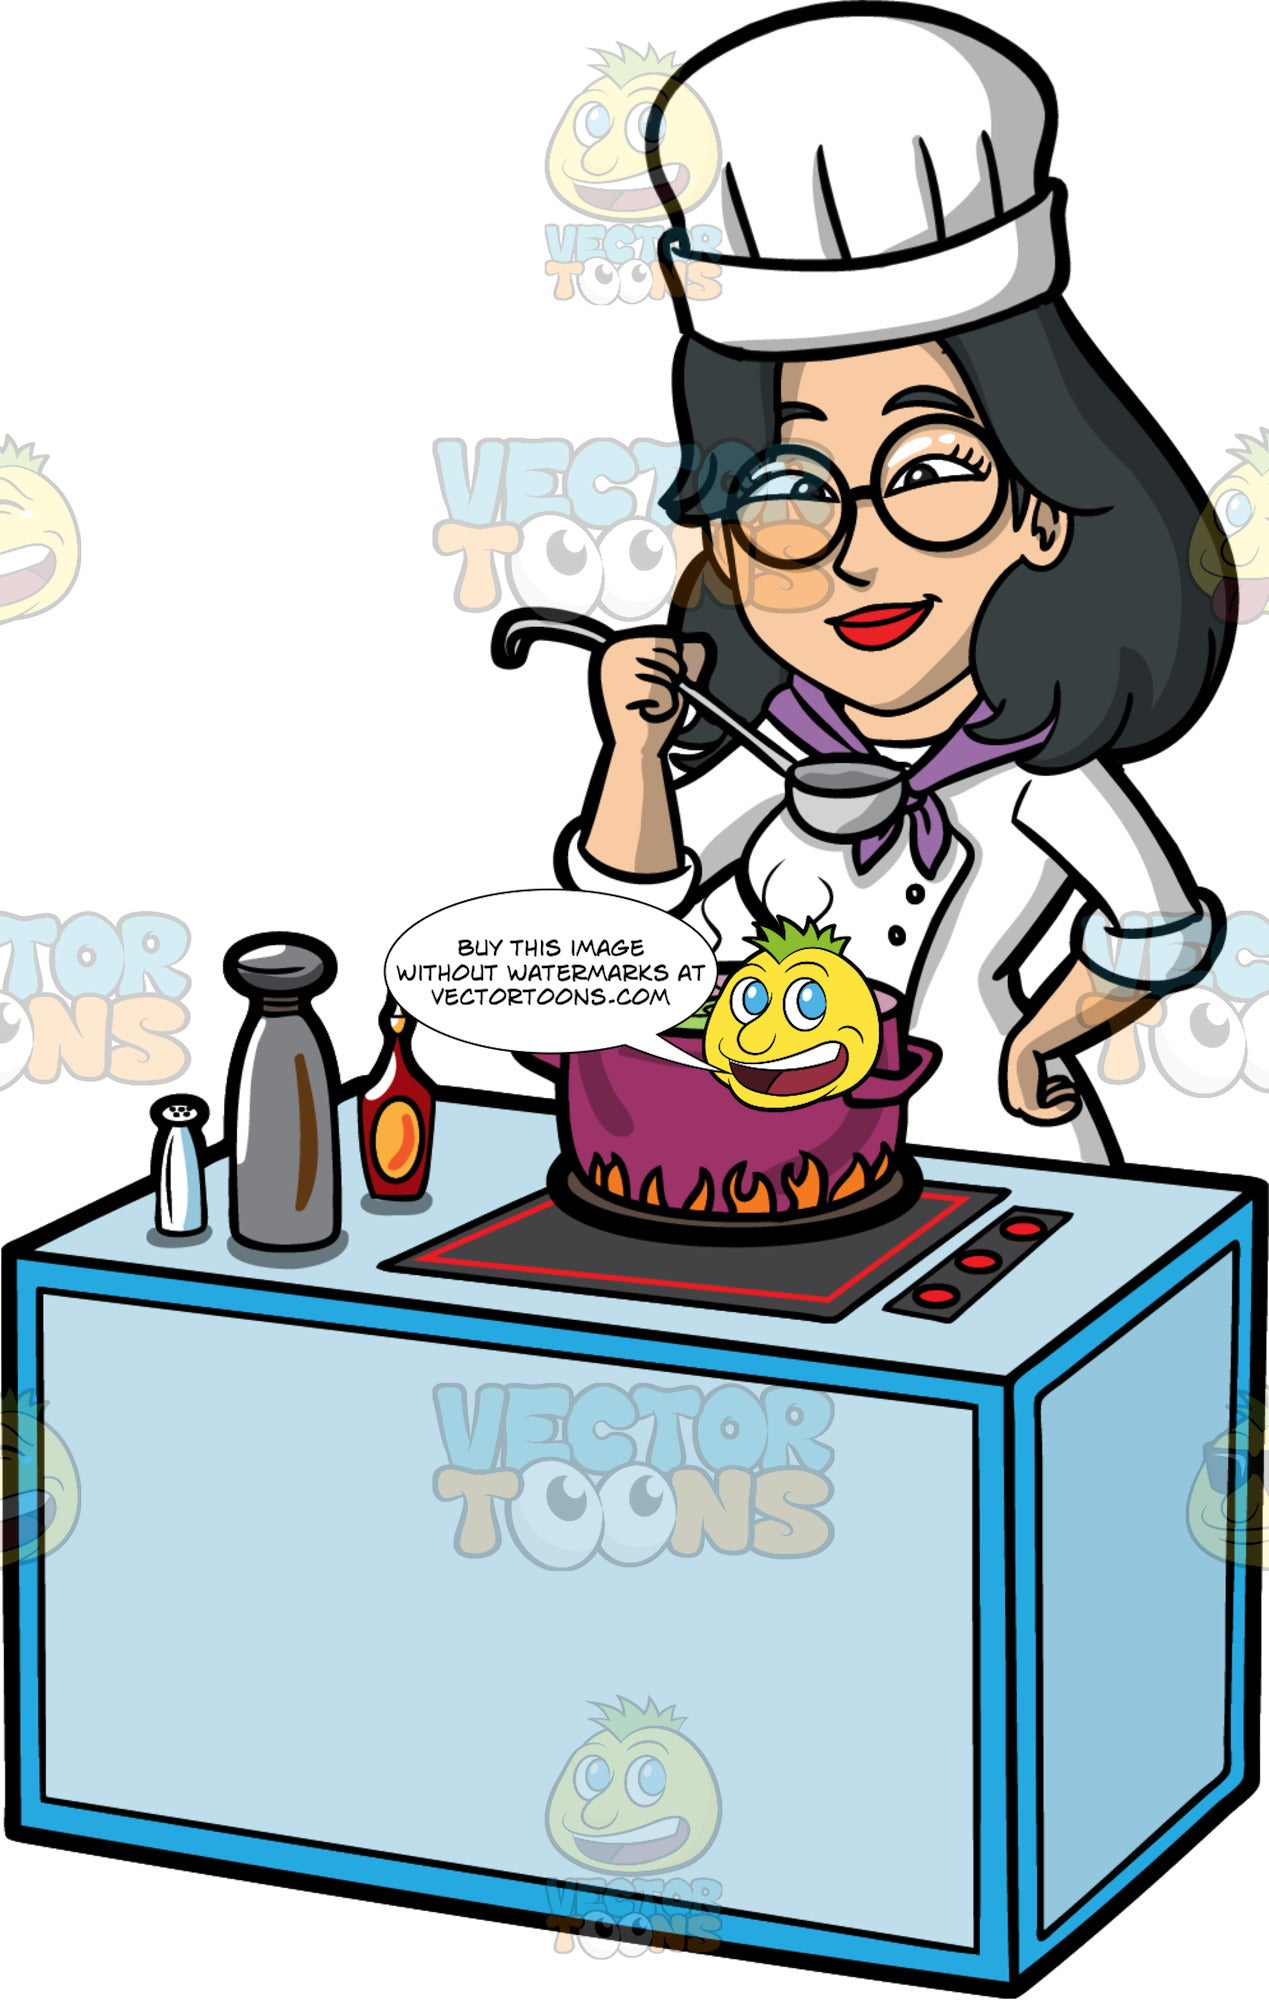 Lynn Tasting The Soup She Is Making. An Asian woman with black hair, wearing a white chef's hat and jacket, and round eye glasses, standing behind a stove and using a ladle to taste the soup cooking in a large pot on the stove